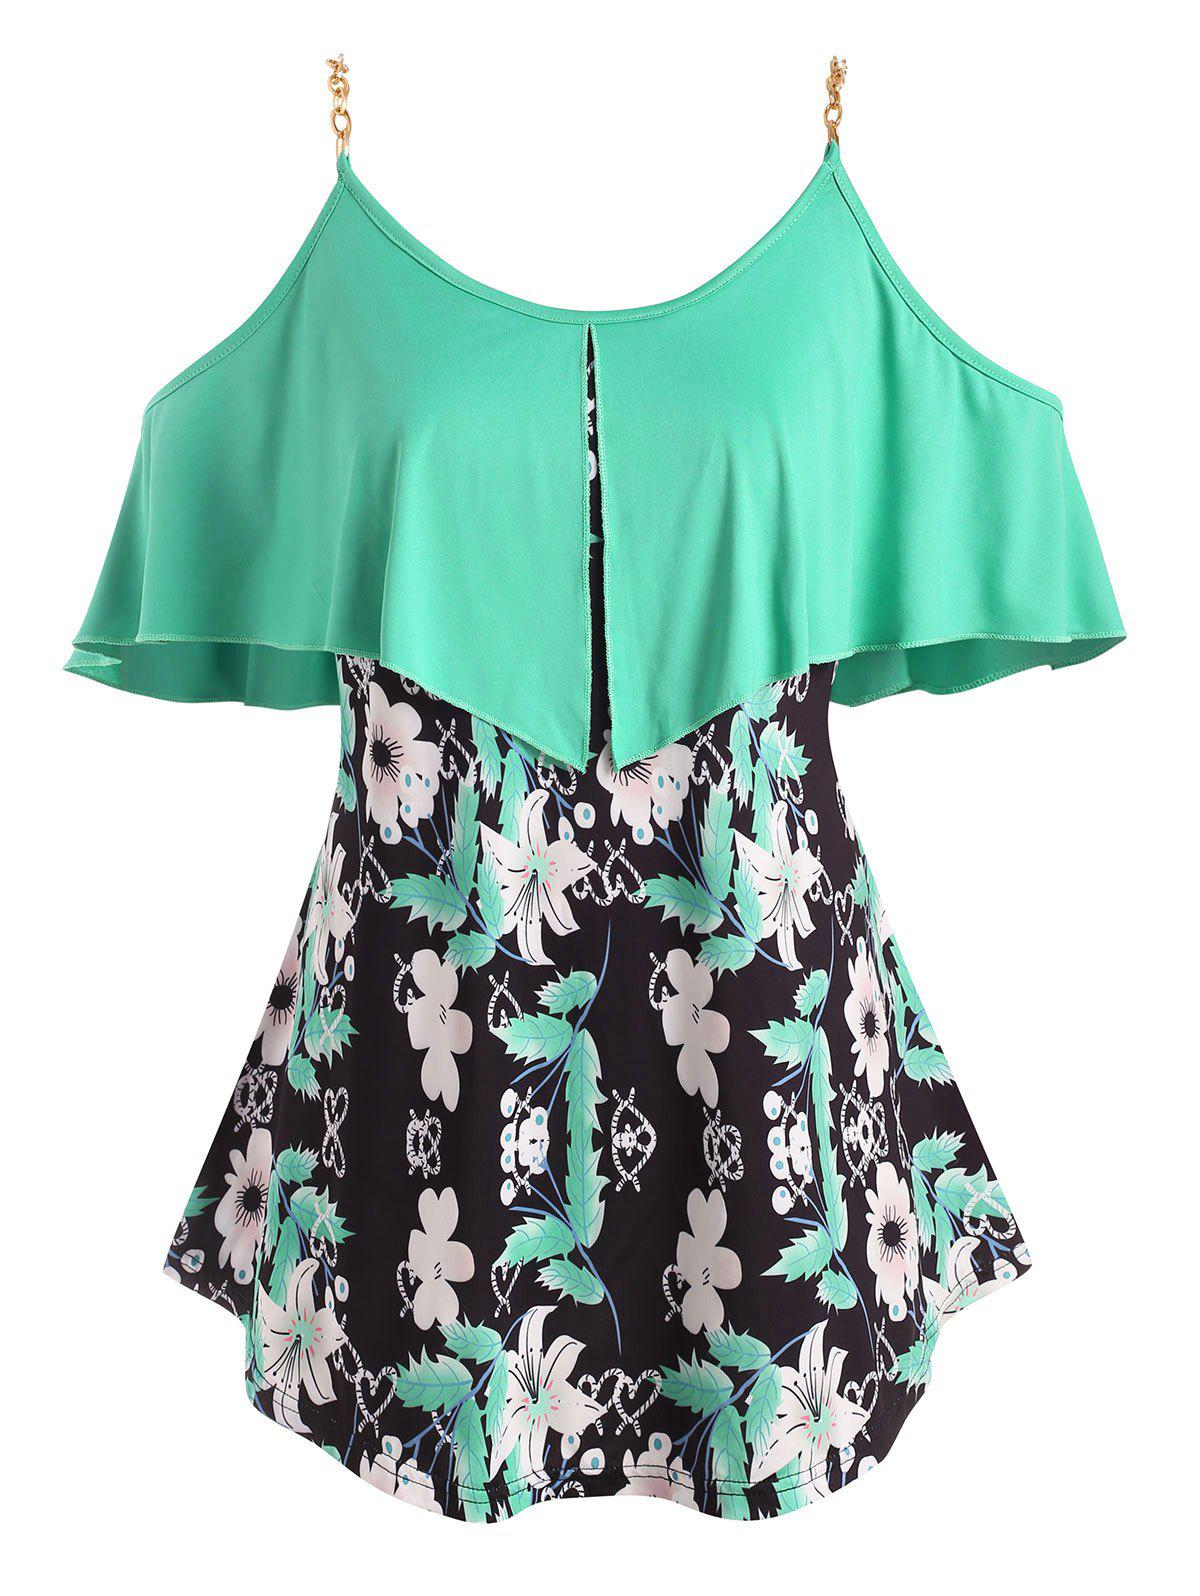 Foldover Metallic Ring Floral Open Shoulder Plus Size Top - GREEN 3X